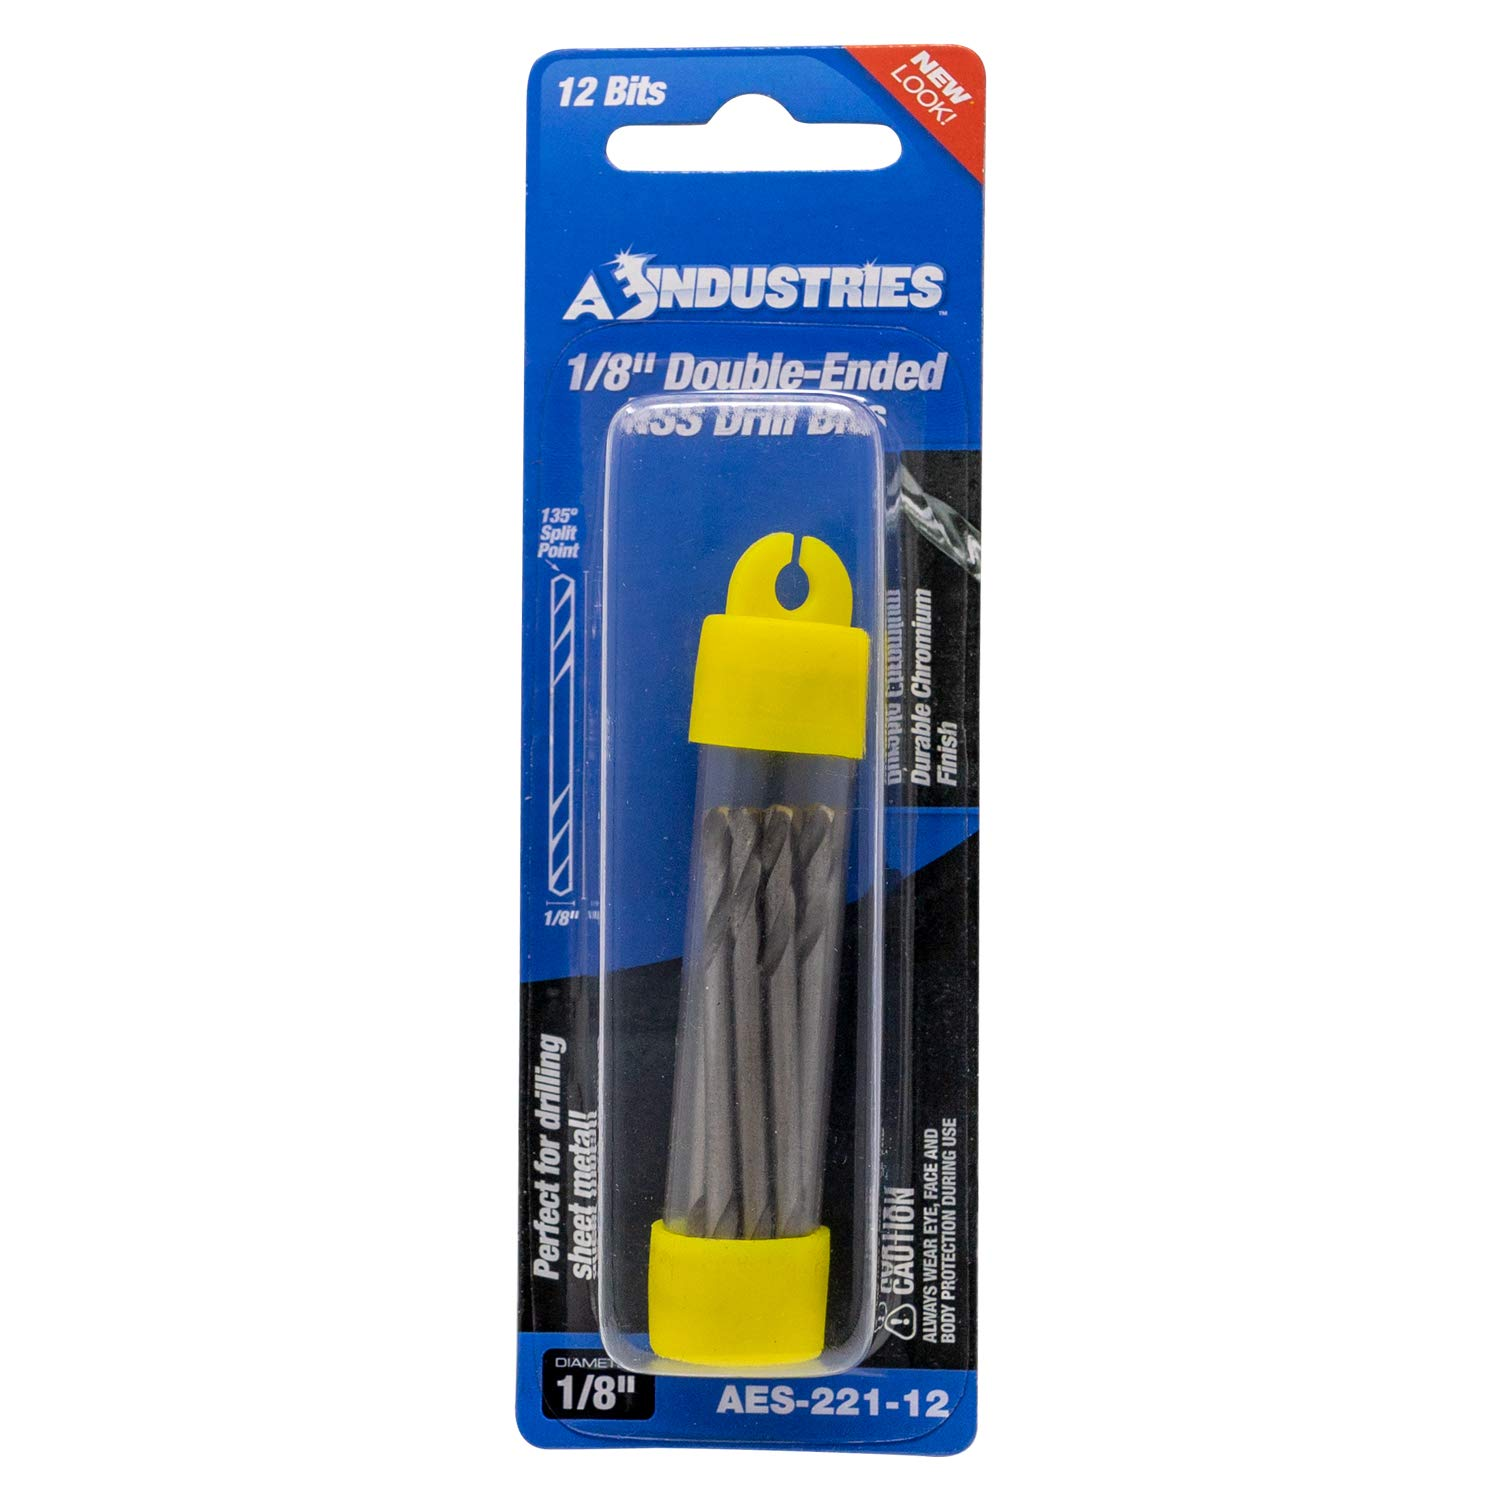 AES Industries 1//8 Double Ended High Speed Steel Stubby Drill Bits with Titanium Coating 12 Bit Pack